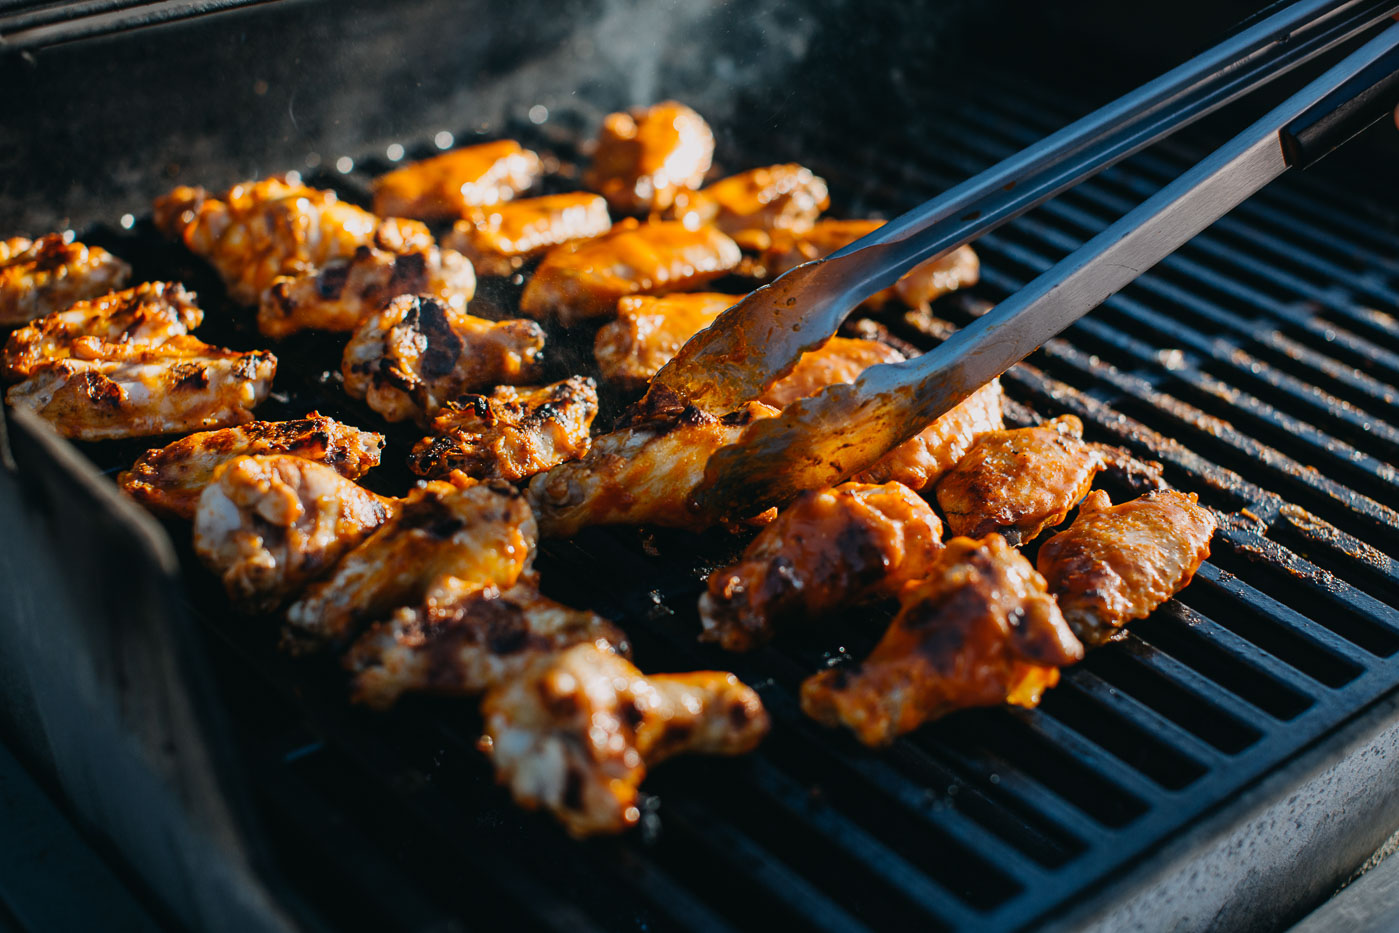 A few dozen chicken wings cooking on a grill grate. Grilling tongs reach into the frame of the image, turning one of the chicken wings.